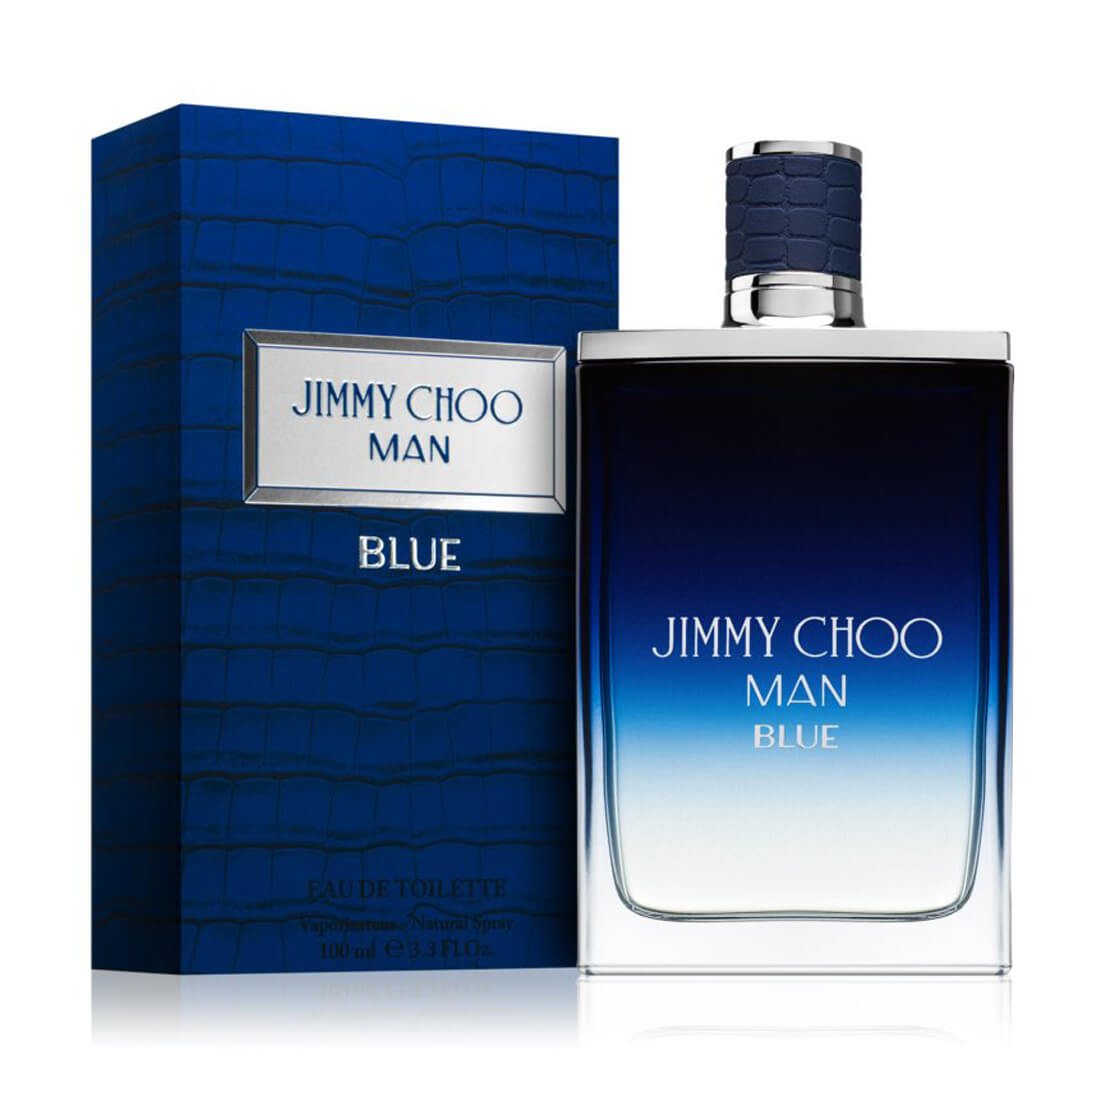 Jimmy Choo Man Blue Eau De Toilette For Men - 100ml